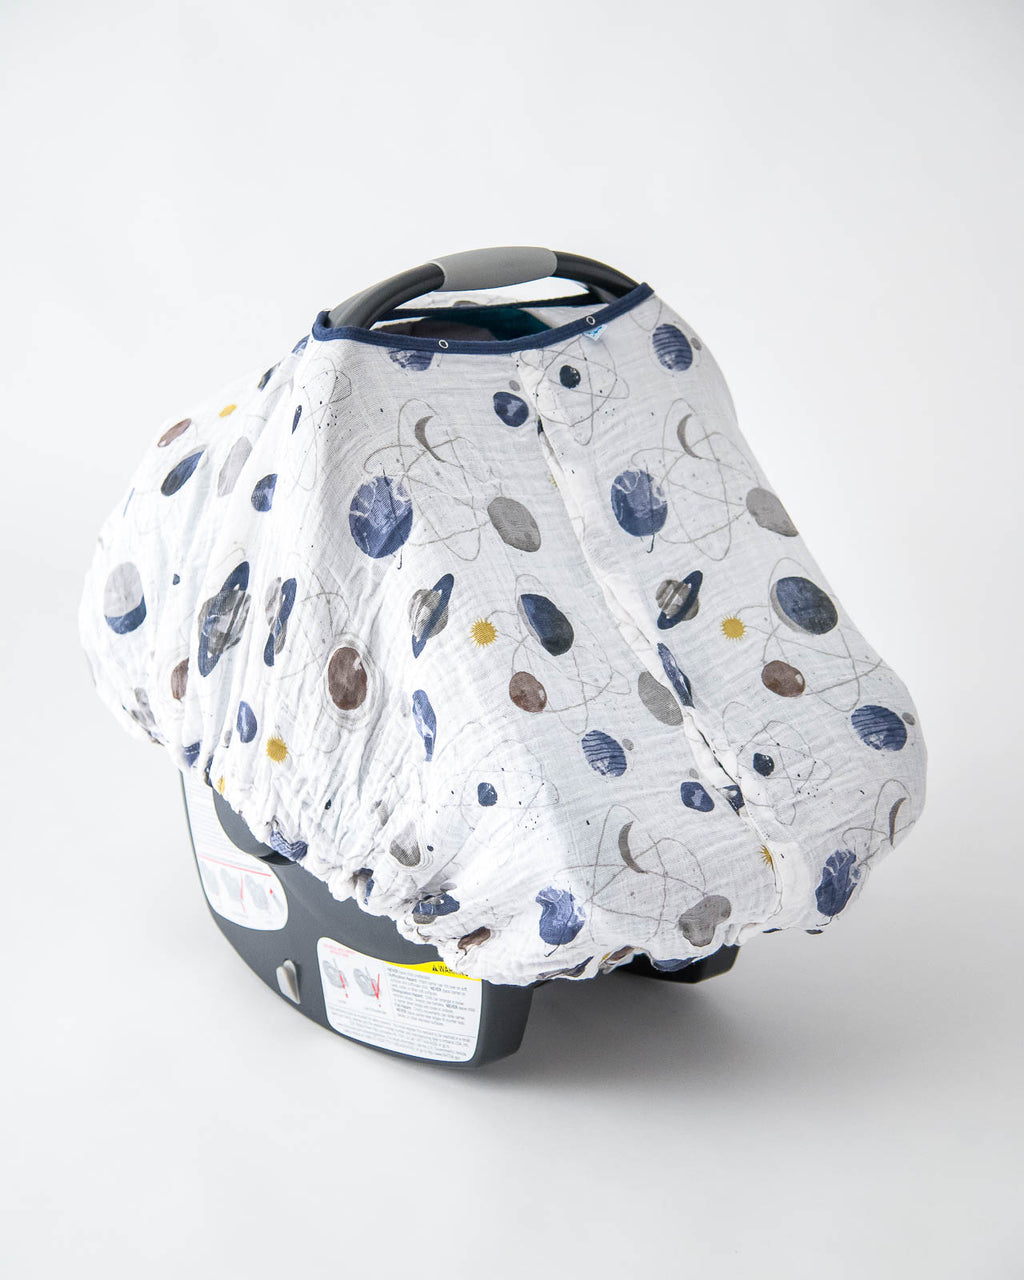 & Little Unicorn Cotton Muslin Car Seat Canopy - Planetary